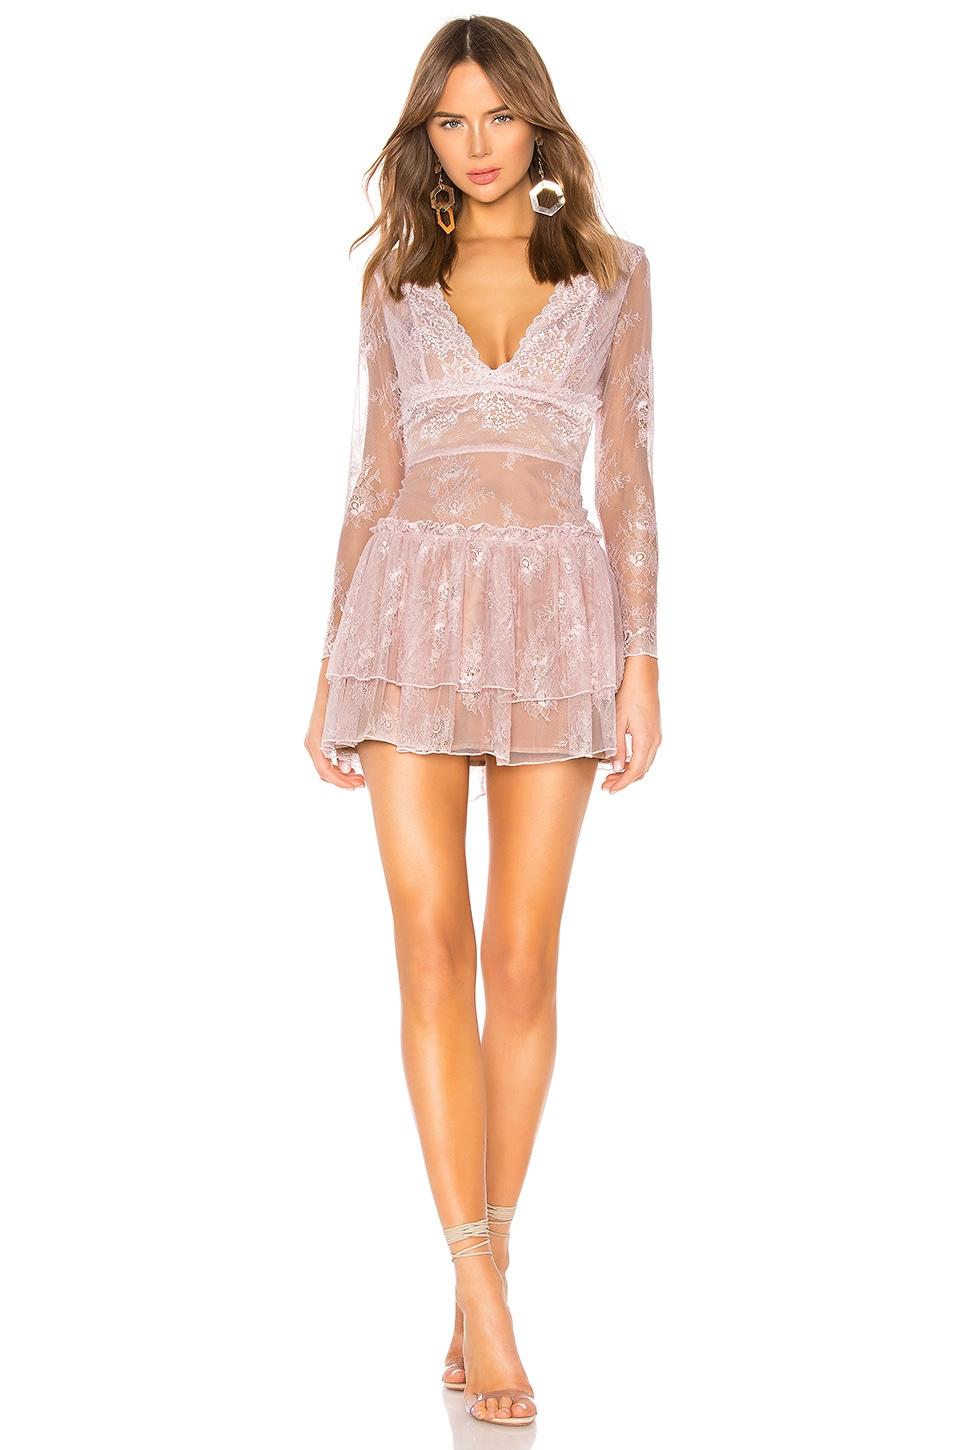 MAJORELLE Giza Mini Dress in Blush Pink